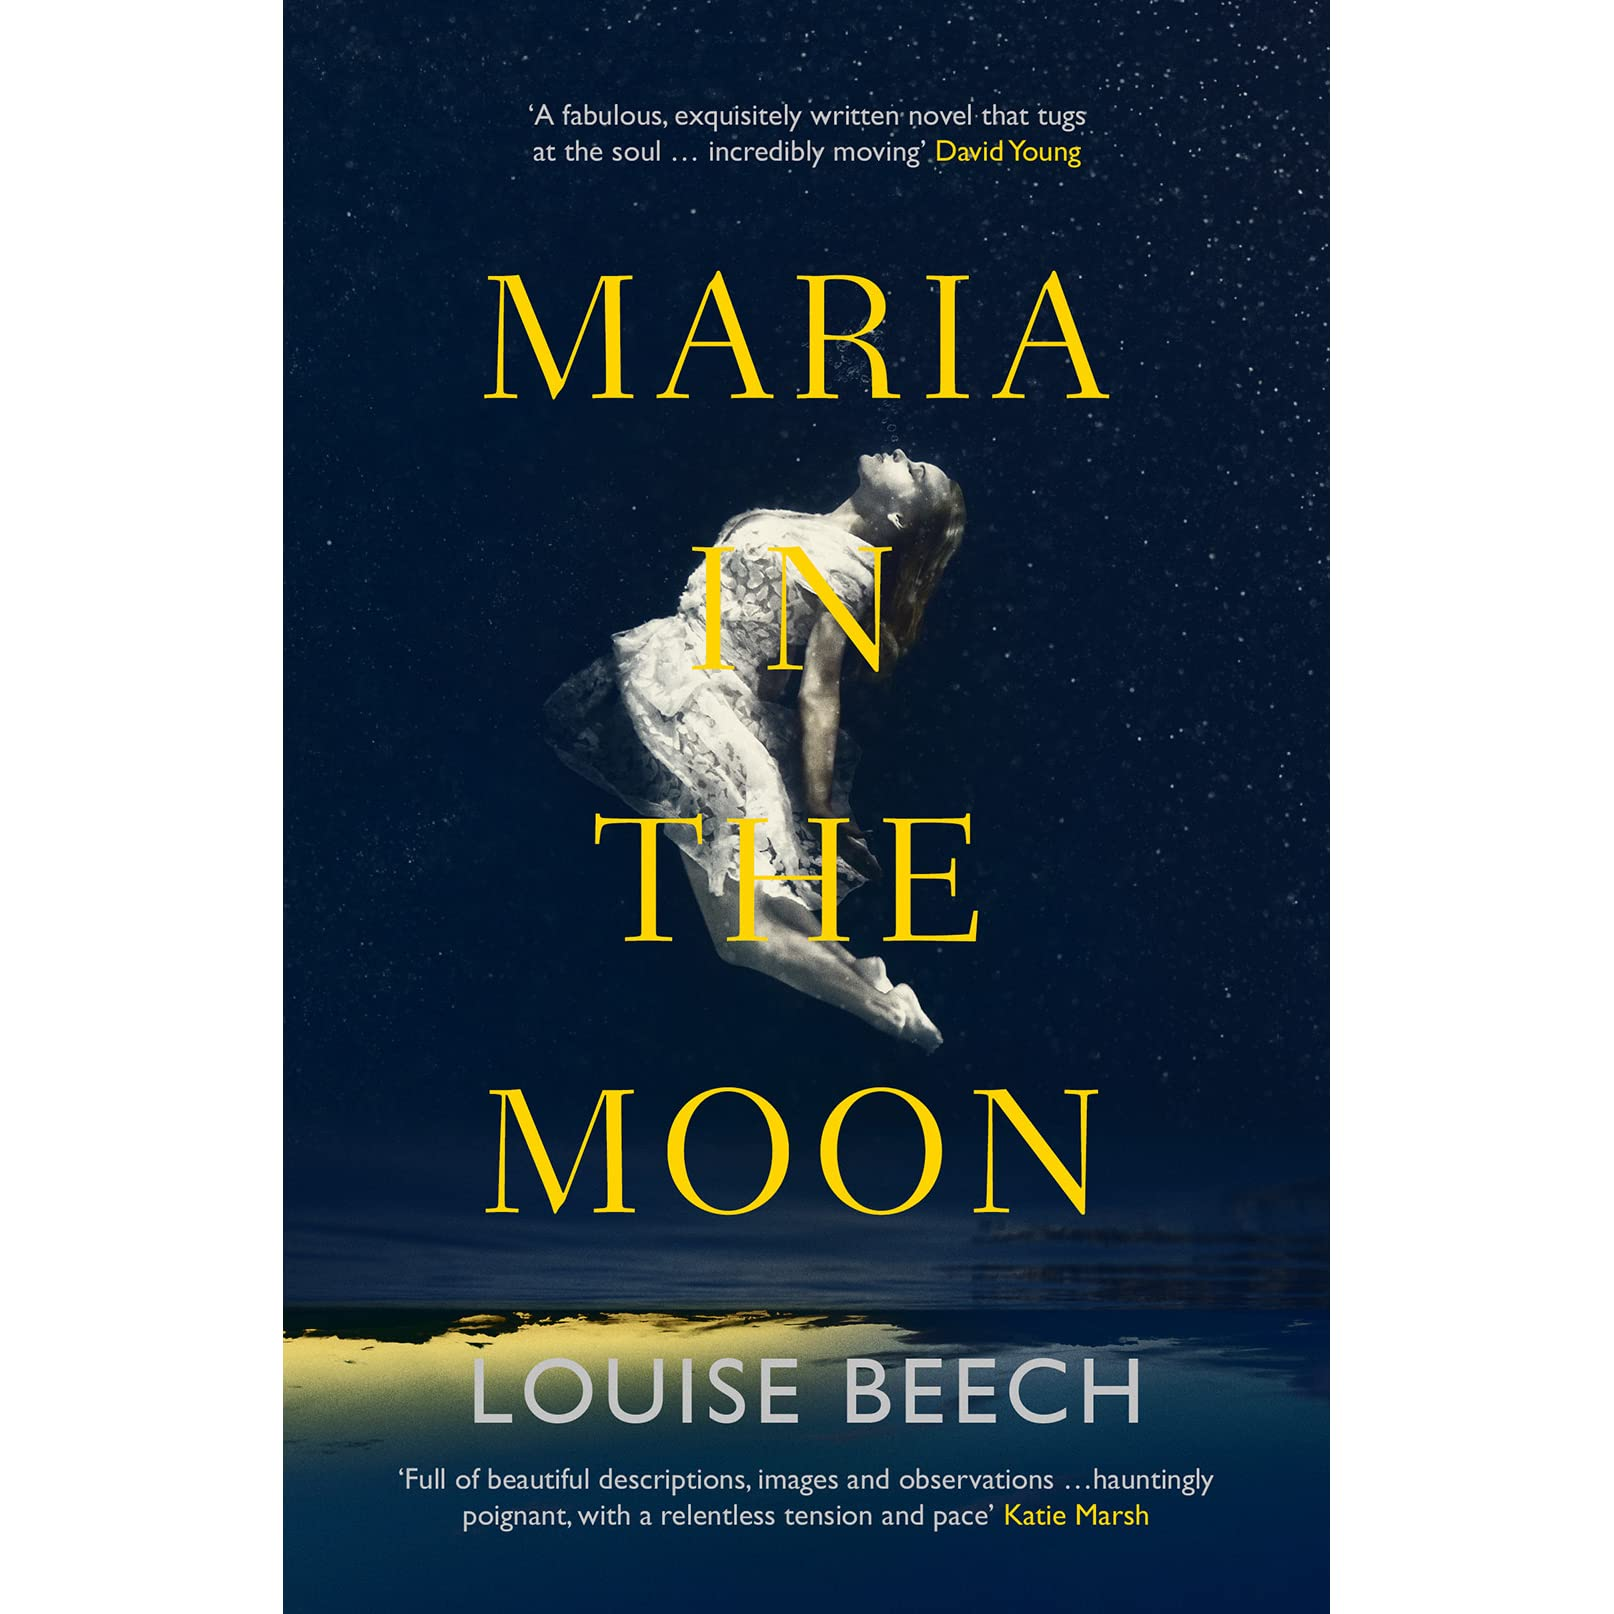 Listen to the moon goodreads giveaways